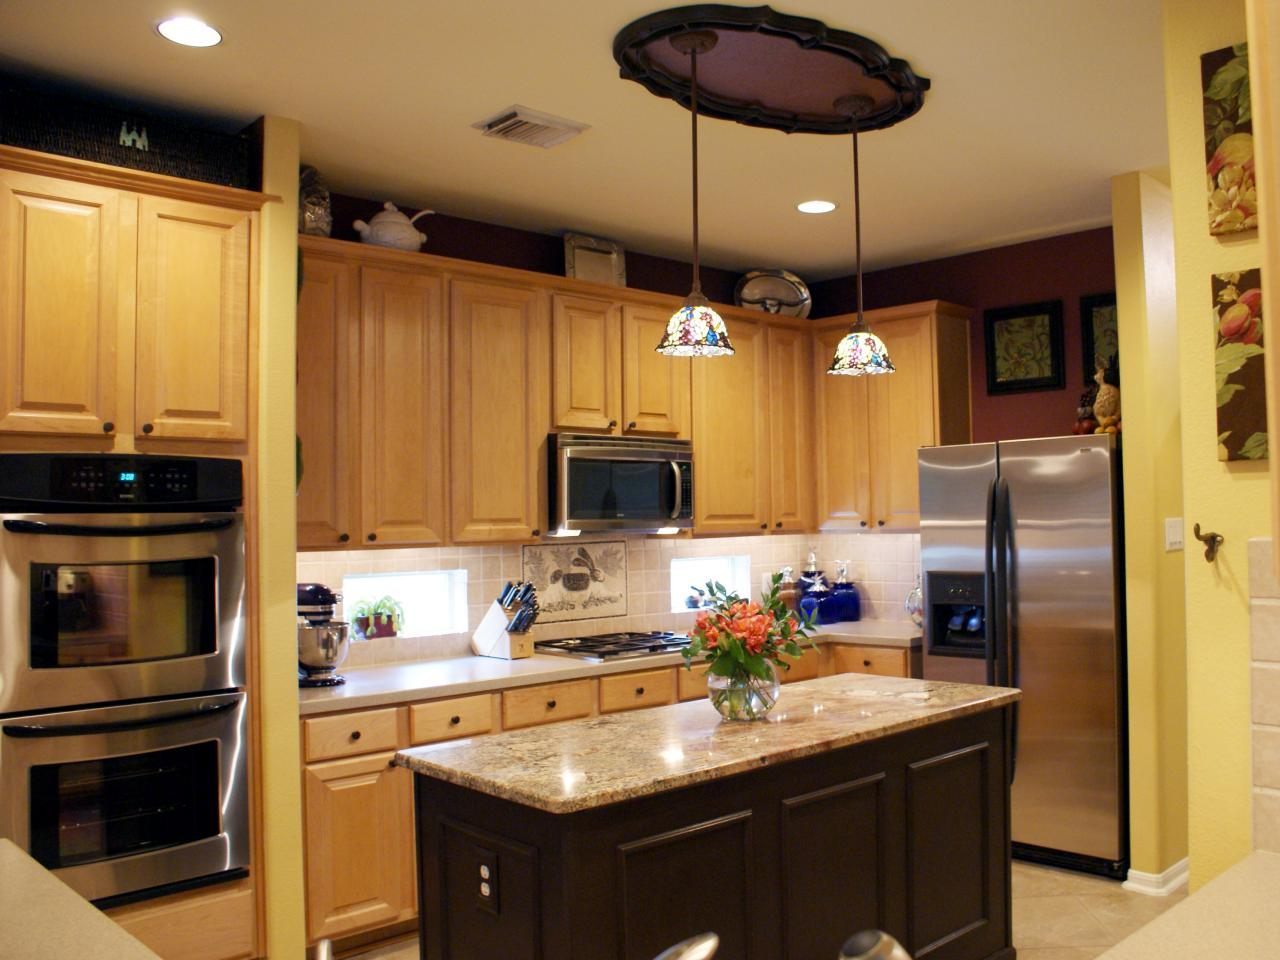 related to cabinets kitchen refacing - Do It Yourself Painting Kitchen Cabinets